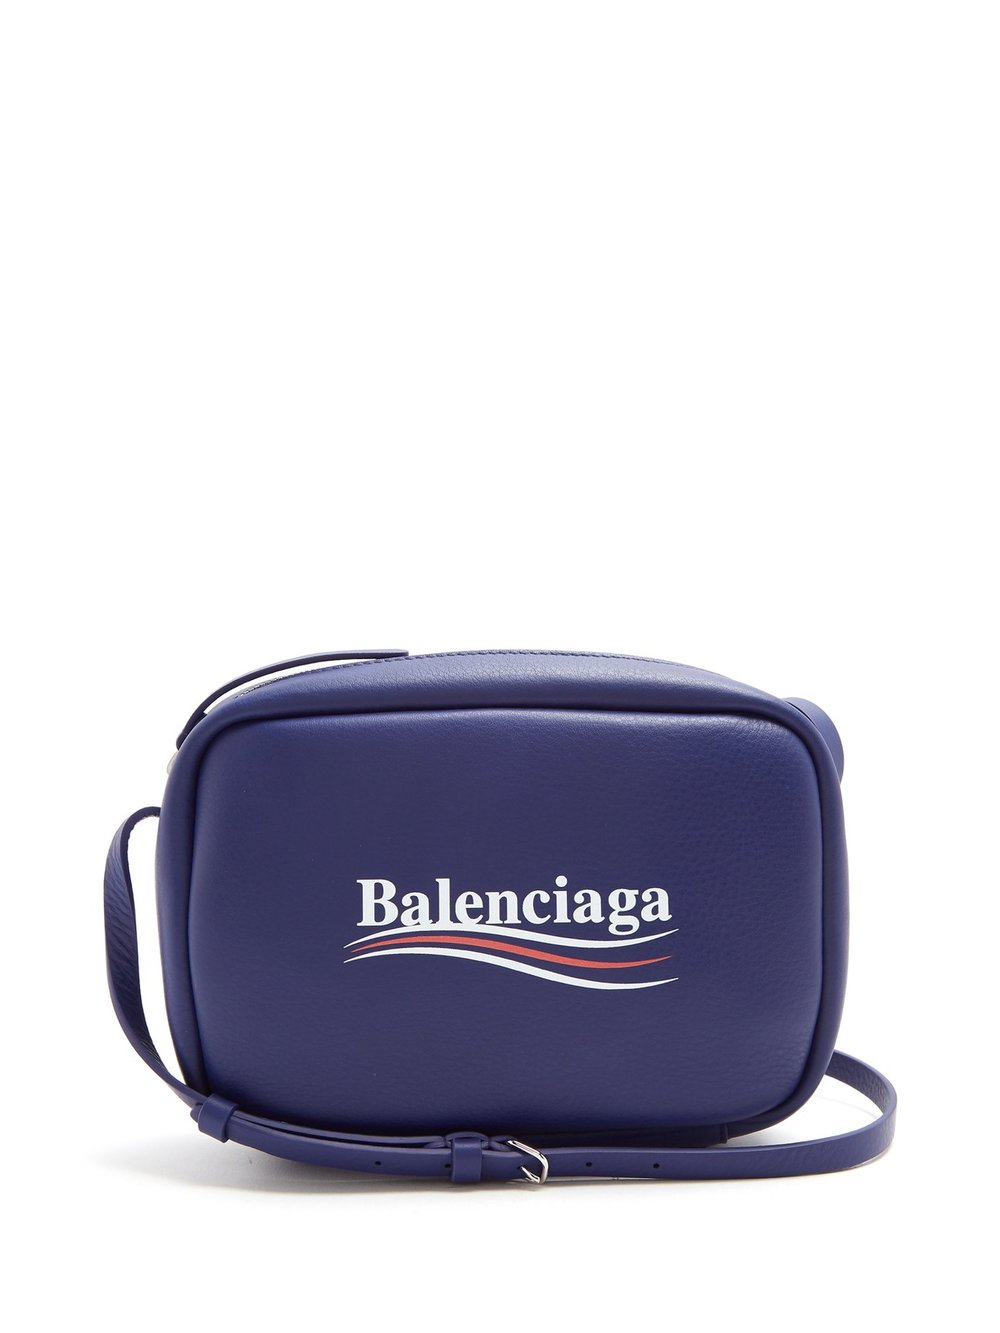 5. Leather bag, £715 by Balenciaga